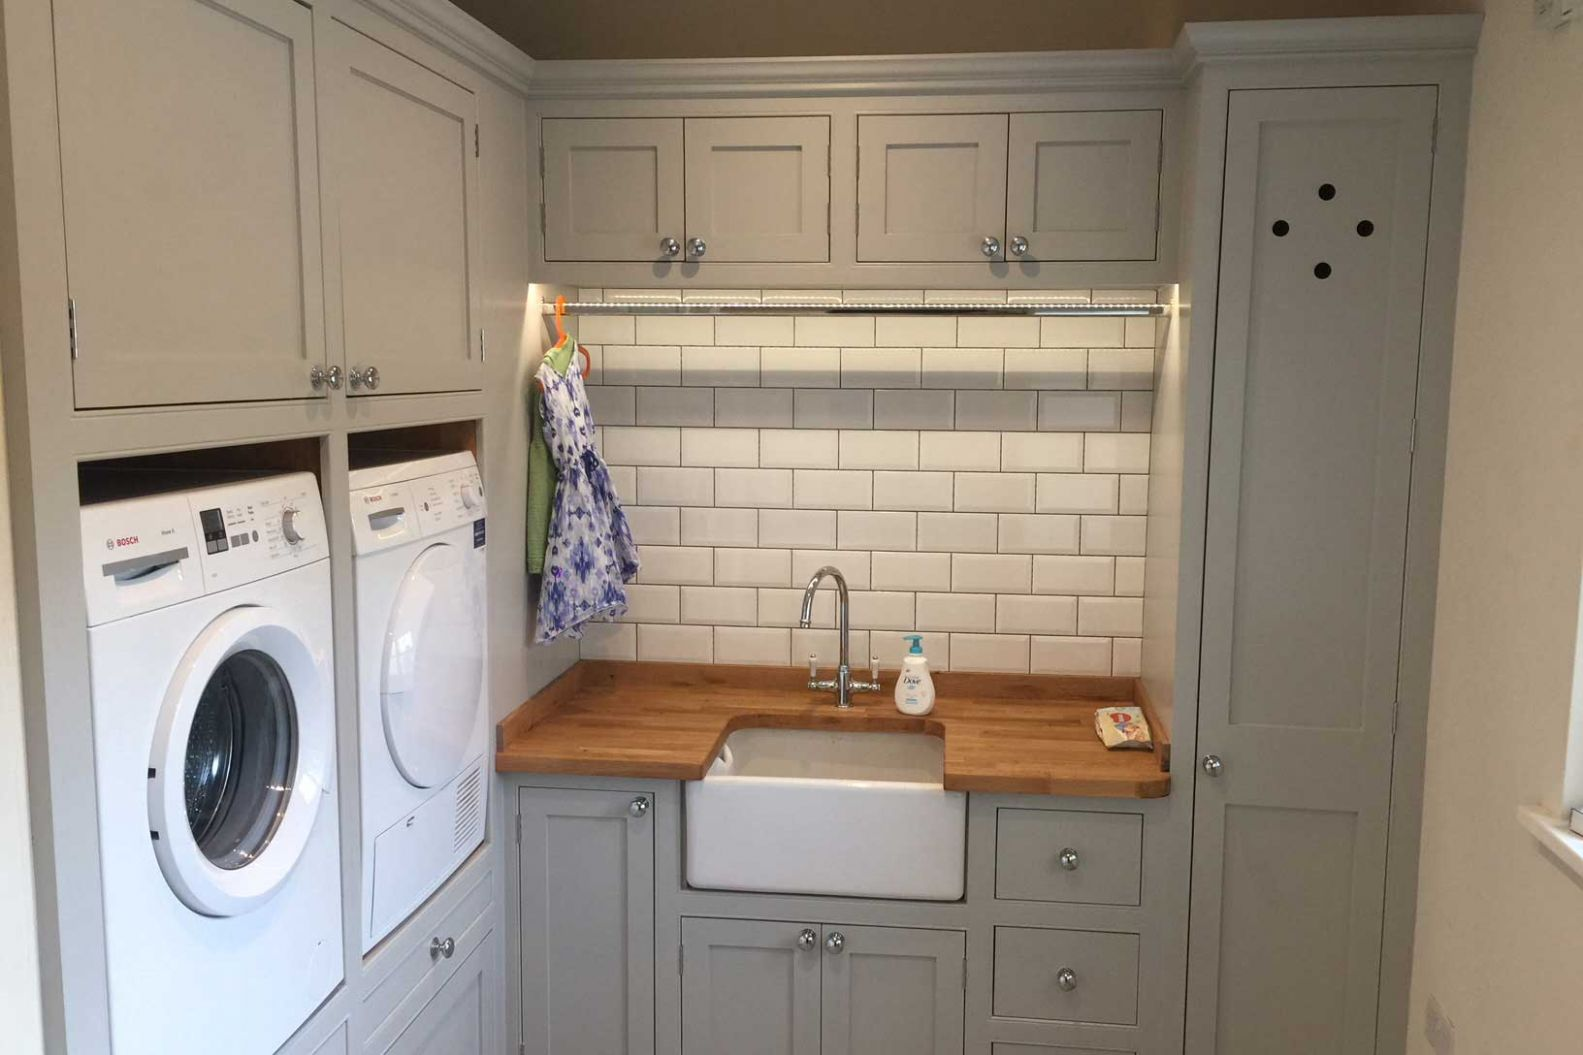 Utility Rooms | The Victorian Kitchen Company | Utility Room Ideas ...